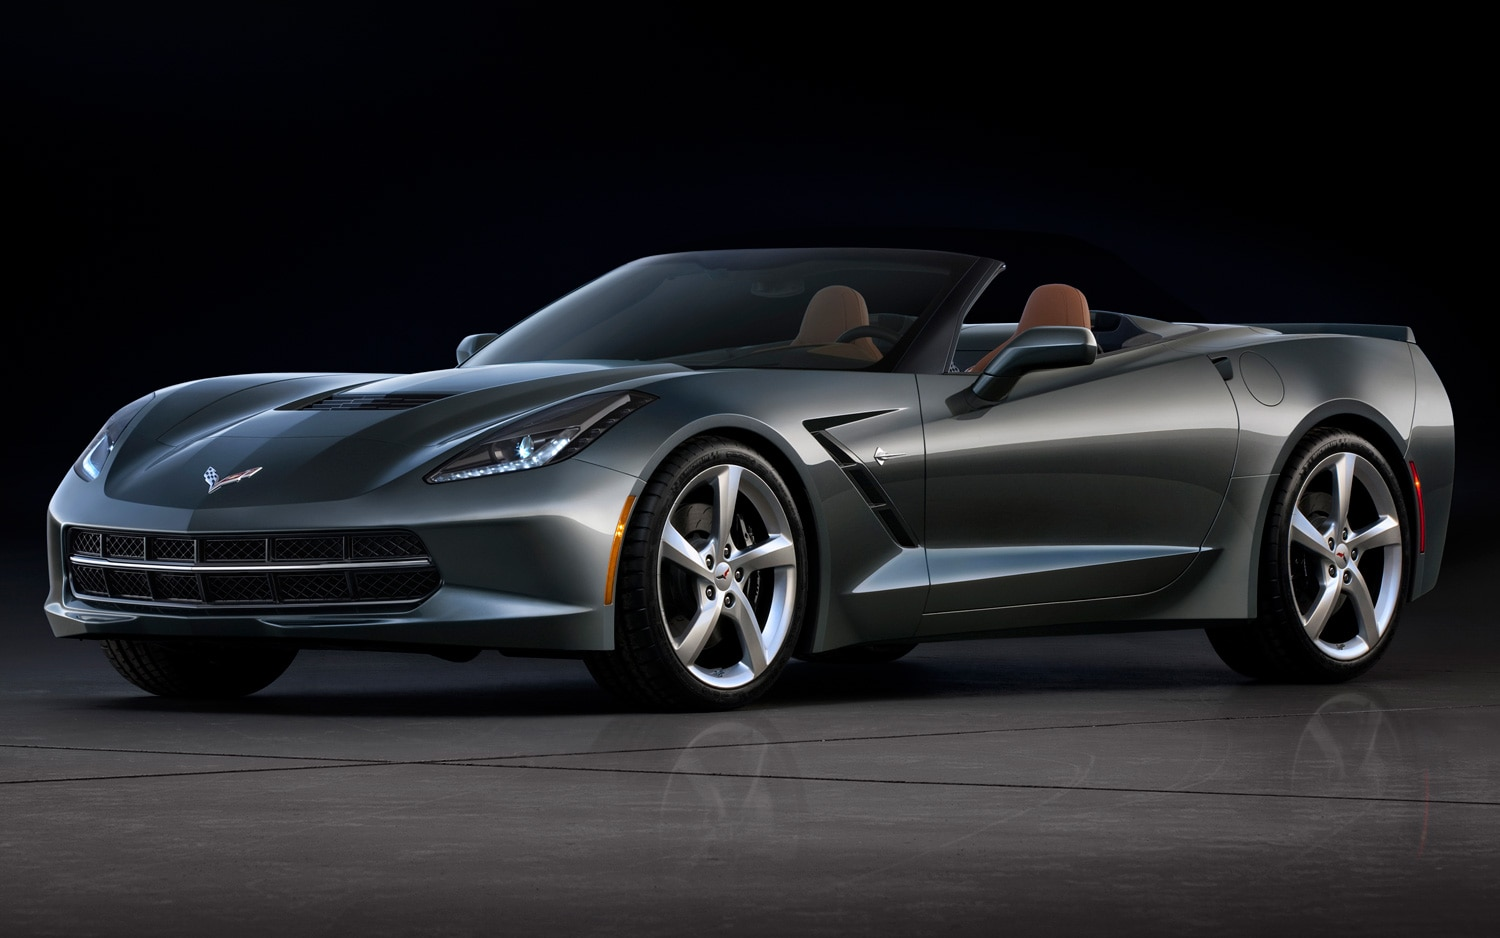 2014 Chevrolet Corvette Stingray Convertible Front Three Quarters View Top Down1